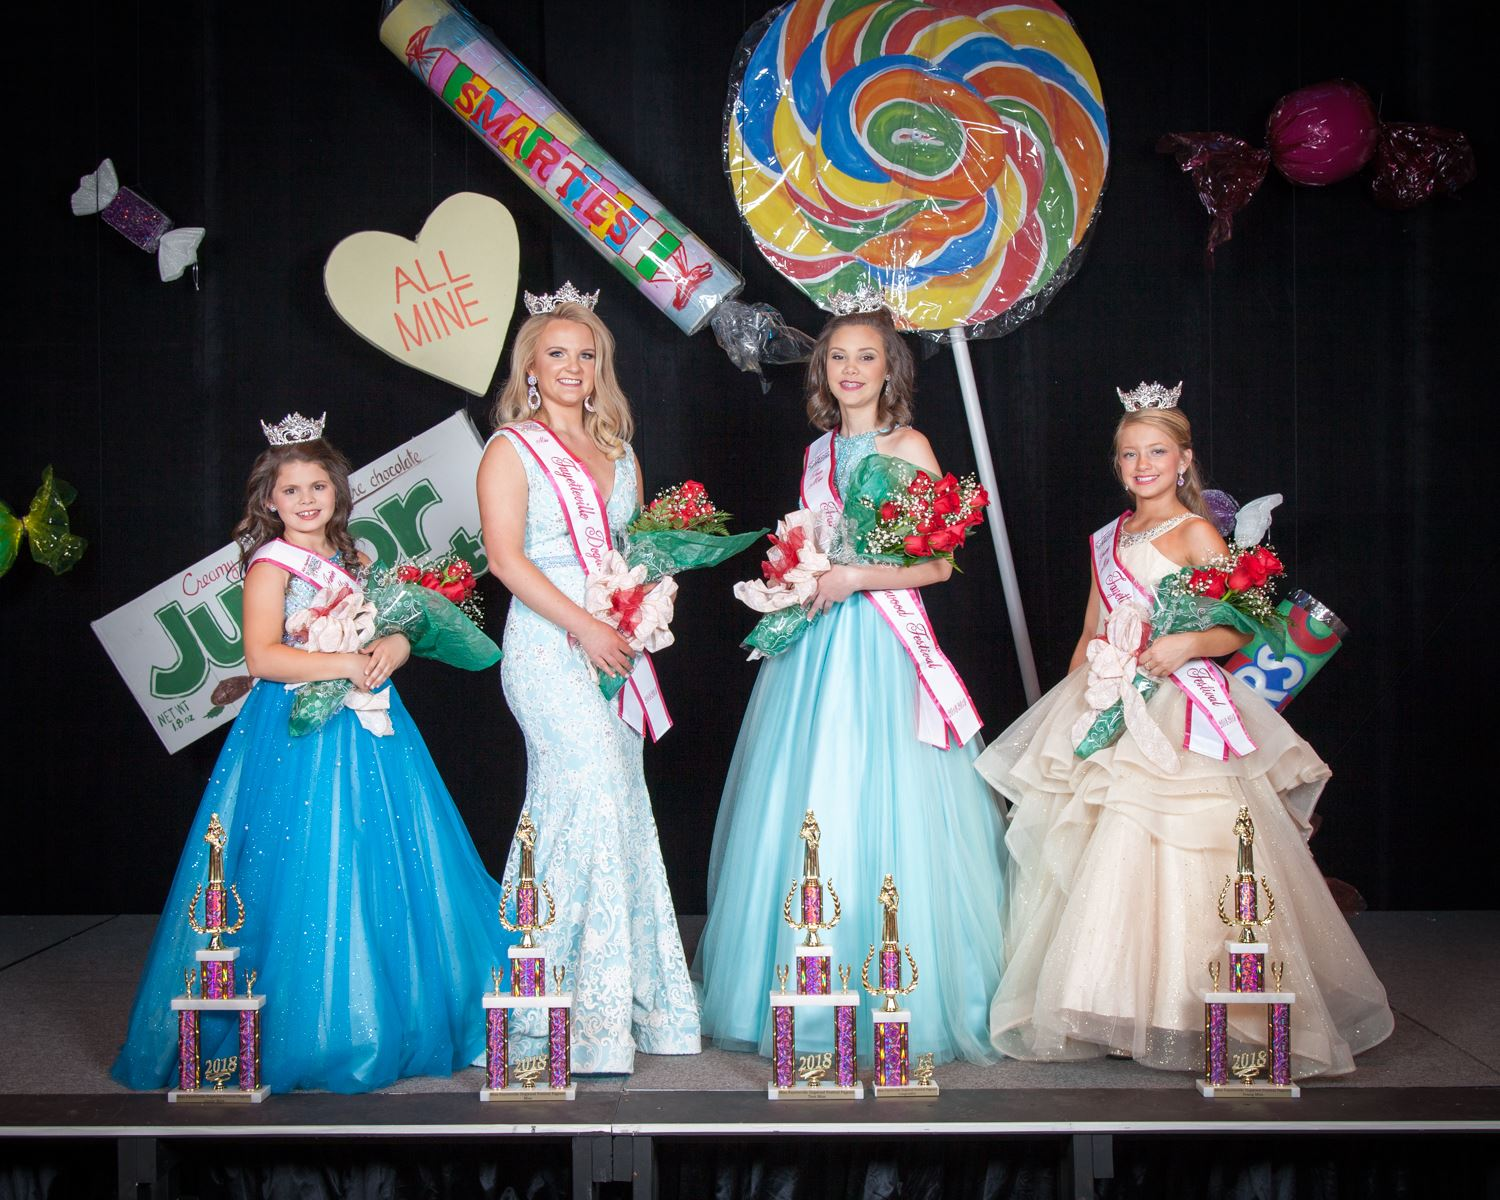 Young teen jr pageant contest pics, spring break girls showing boobs